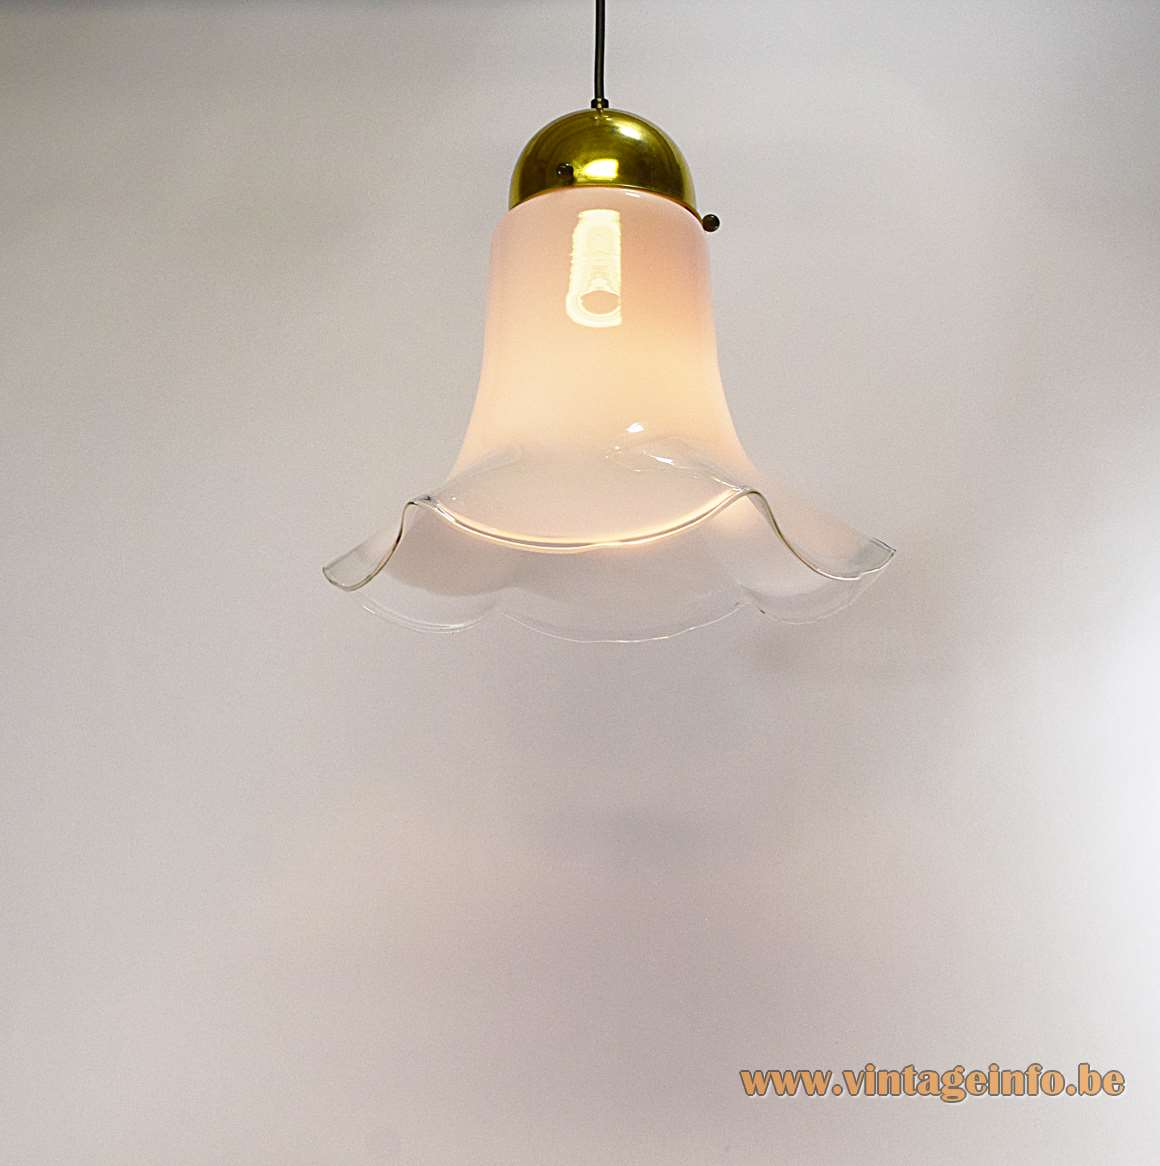 Peill + Putzler Petunia Pendant Lamp hand blown clear and white glass flower petticoat chandelier 1960s 1970s MCM